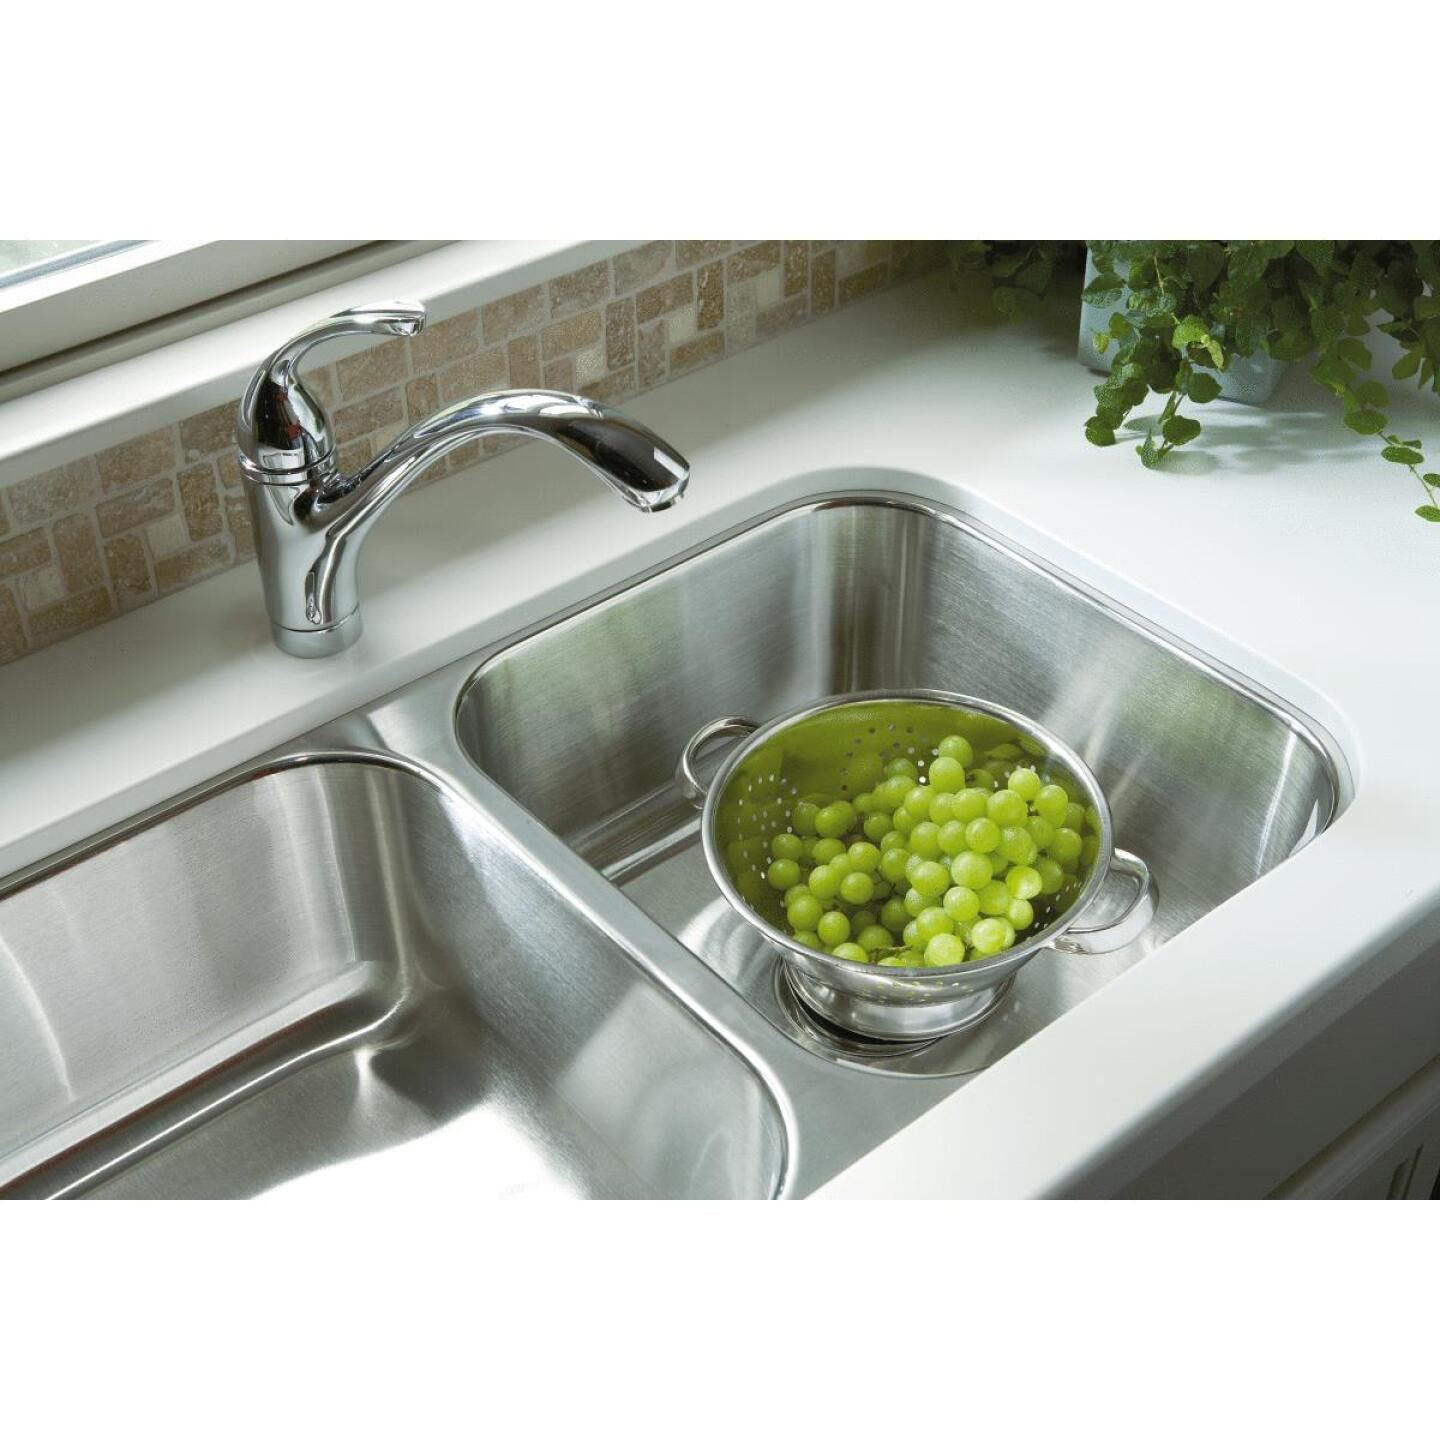 Sterling 8 In. Stainless Steel Undermount Sink Image 2